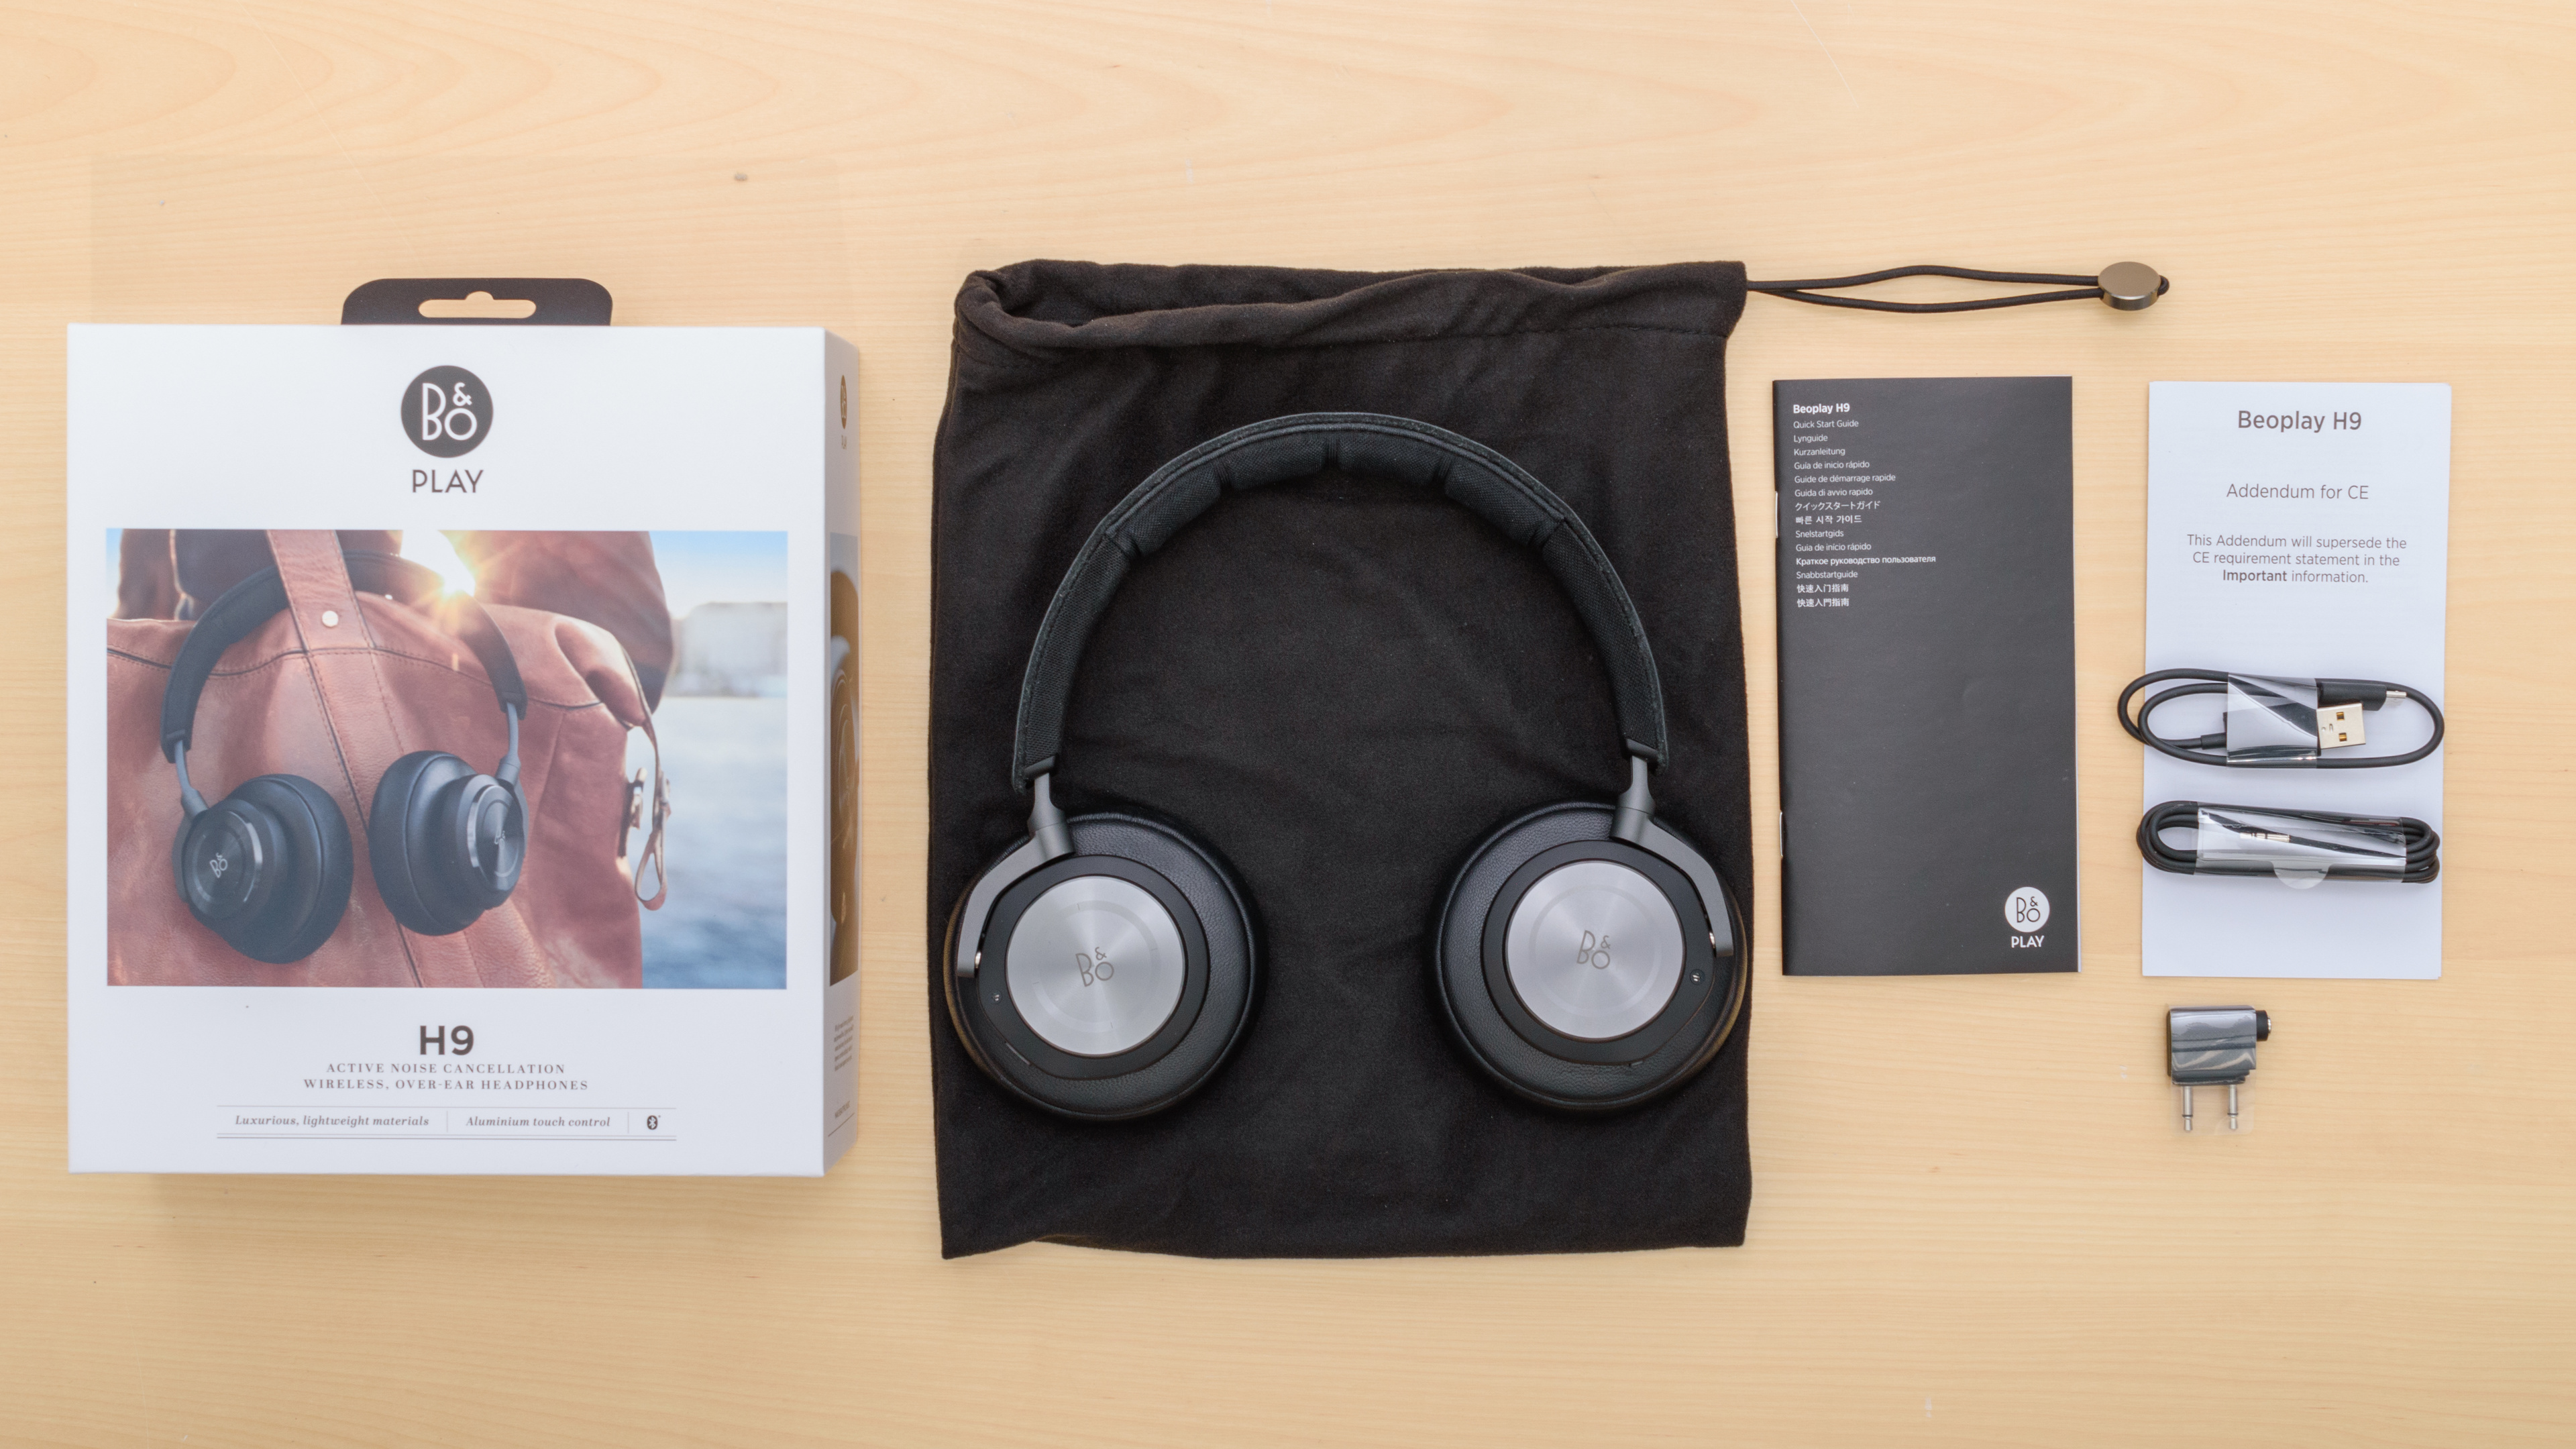 Bo Play Beoplay H9 Review Bang Ampamp Olufsen H3 Lightweight Earphone Silver In The Box Picture